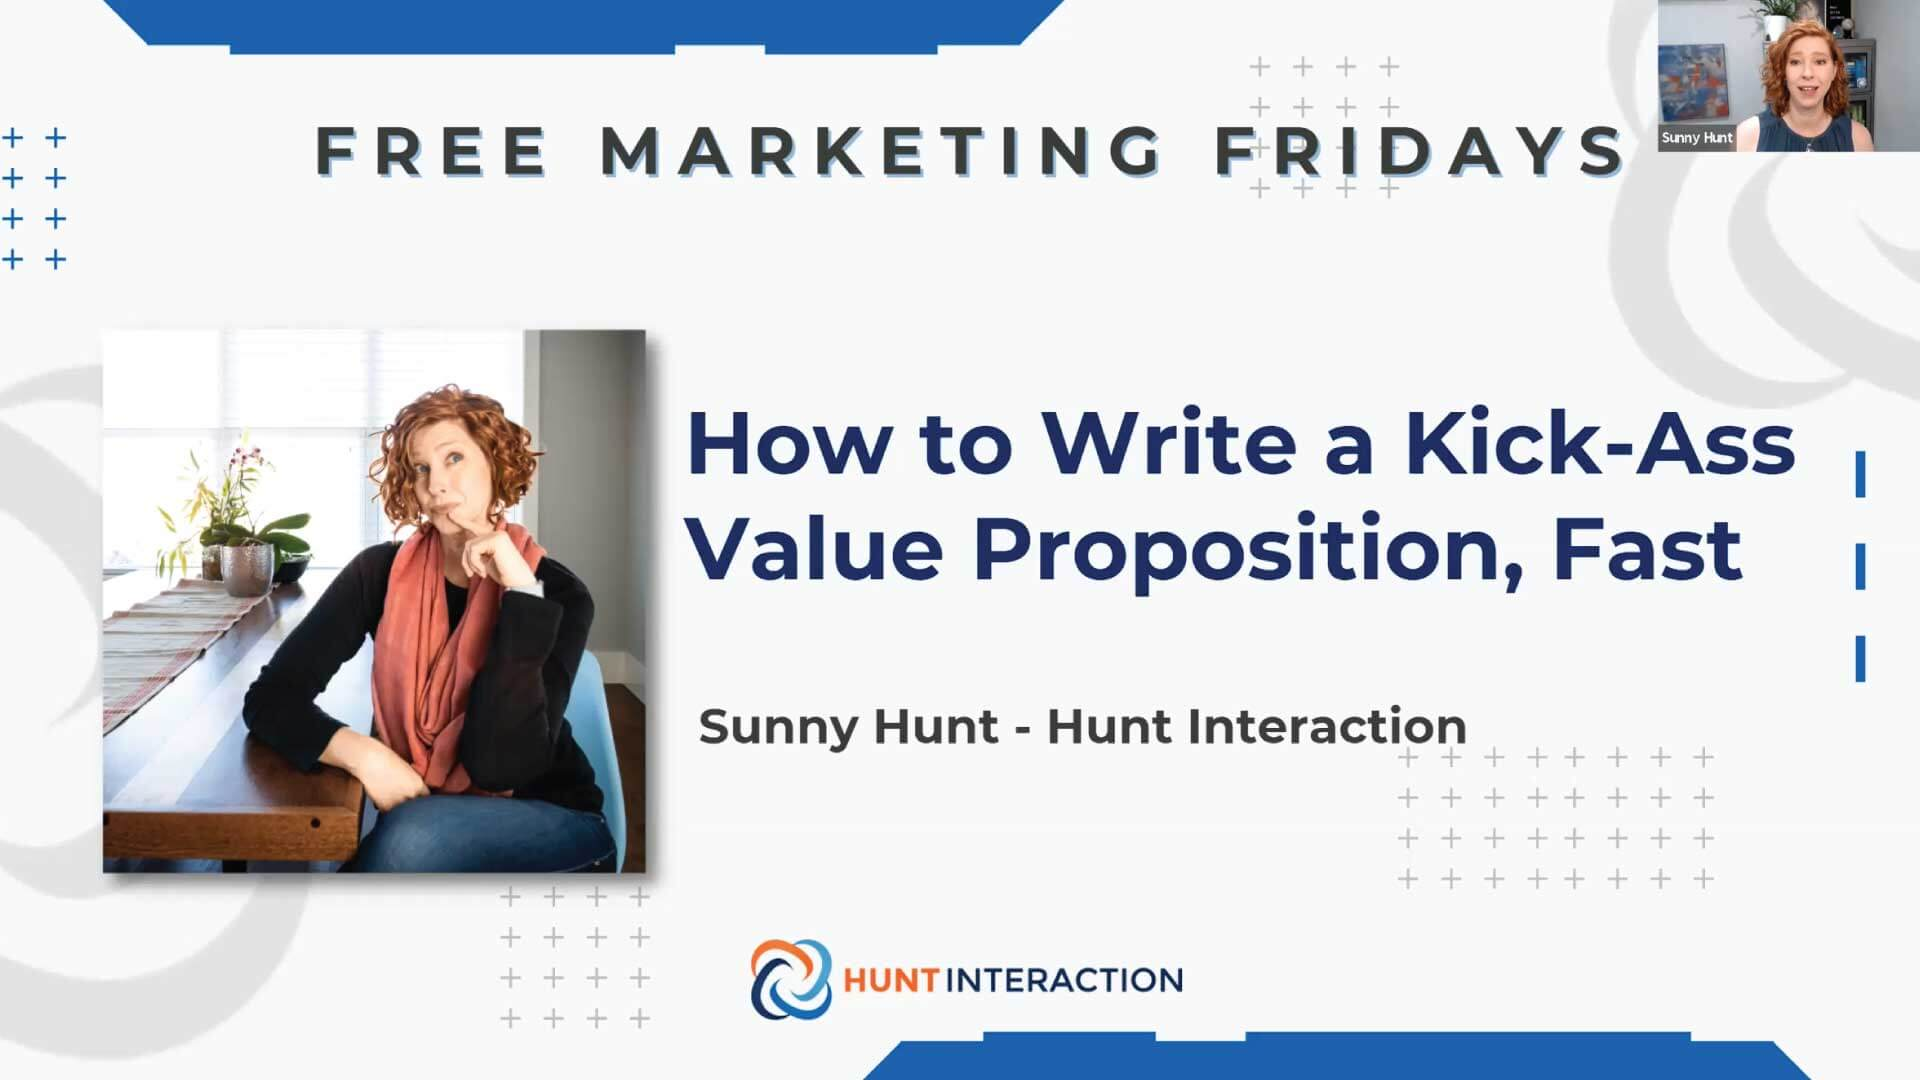 Free Marketing Friday - How to Write a Kick-Ass Value Proposition